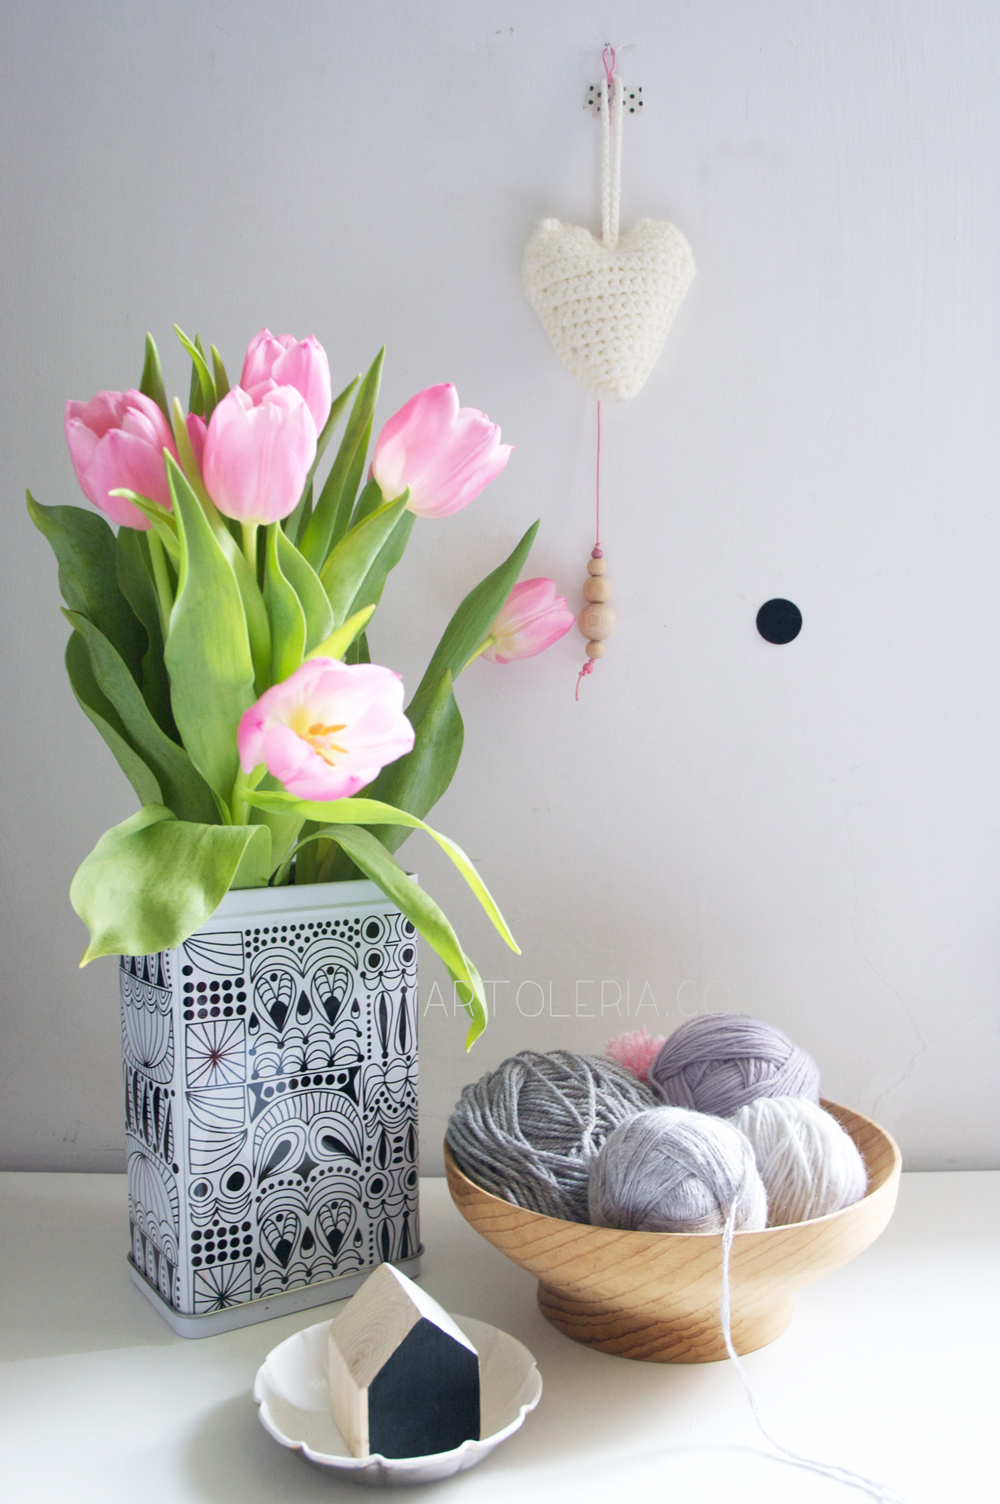 wool and tulips